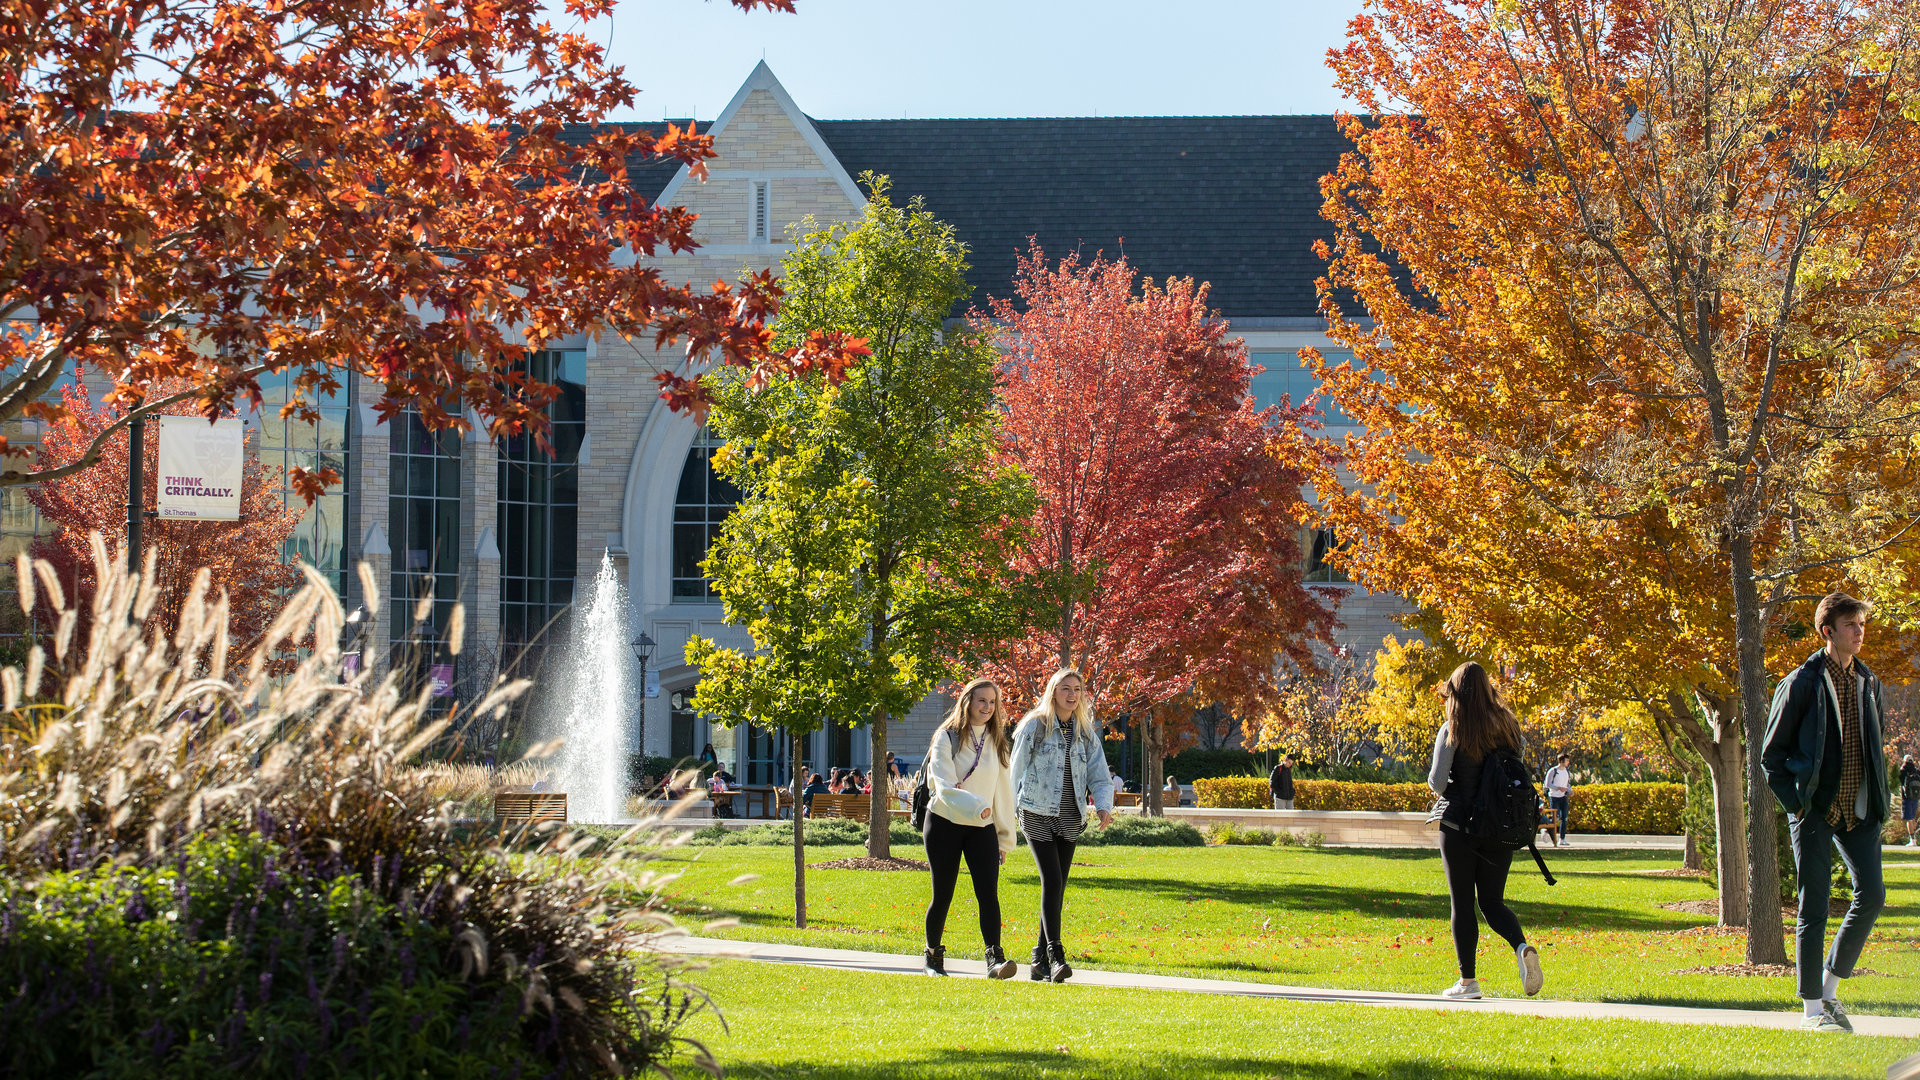 students walk around campus during the fall